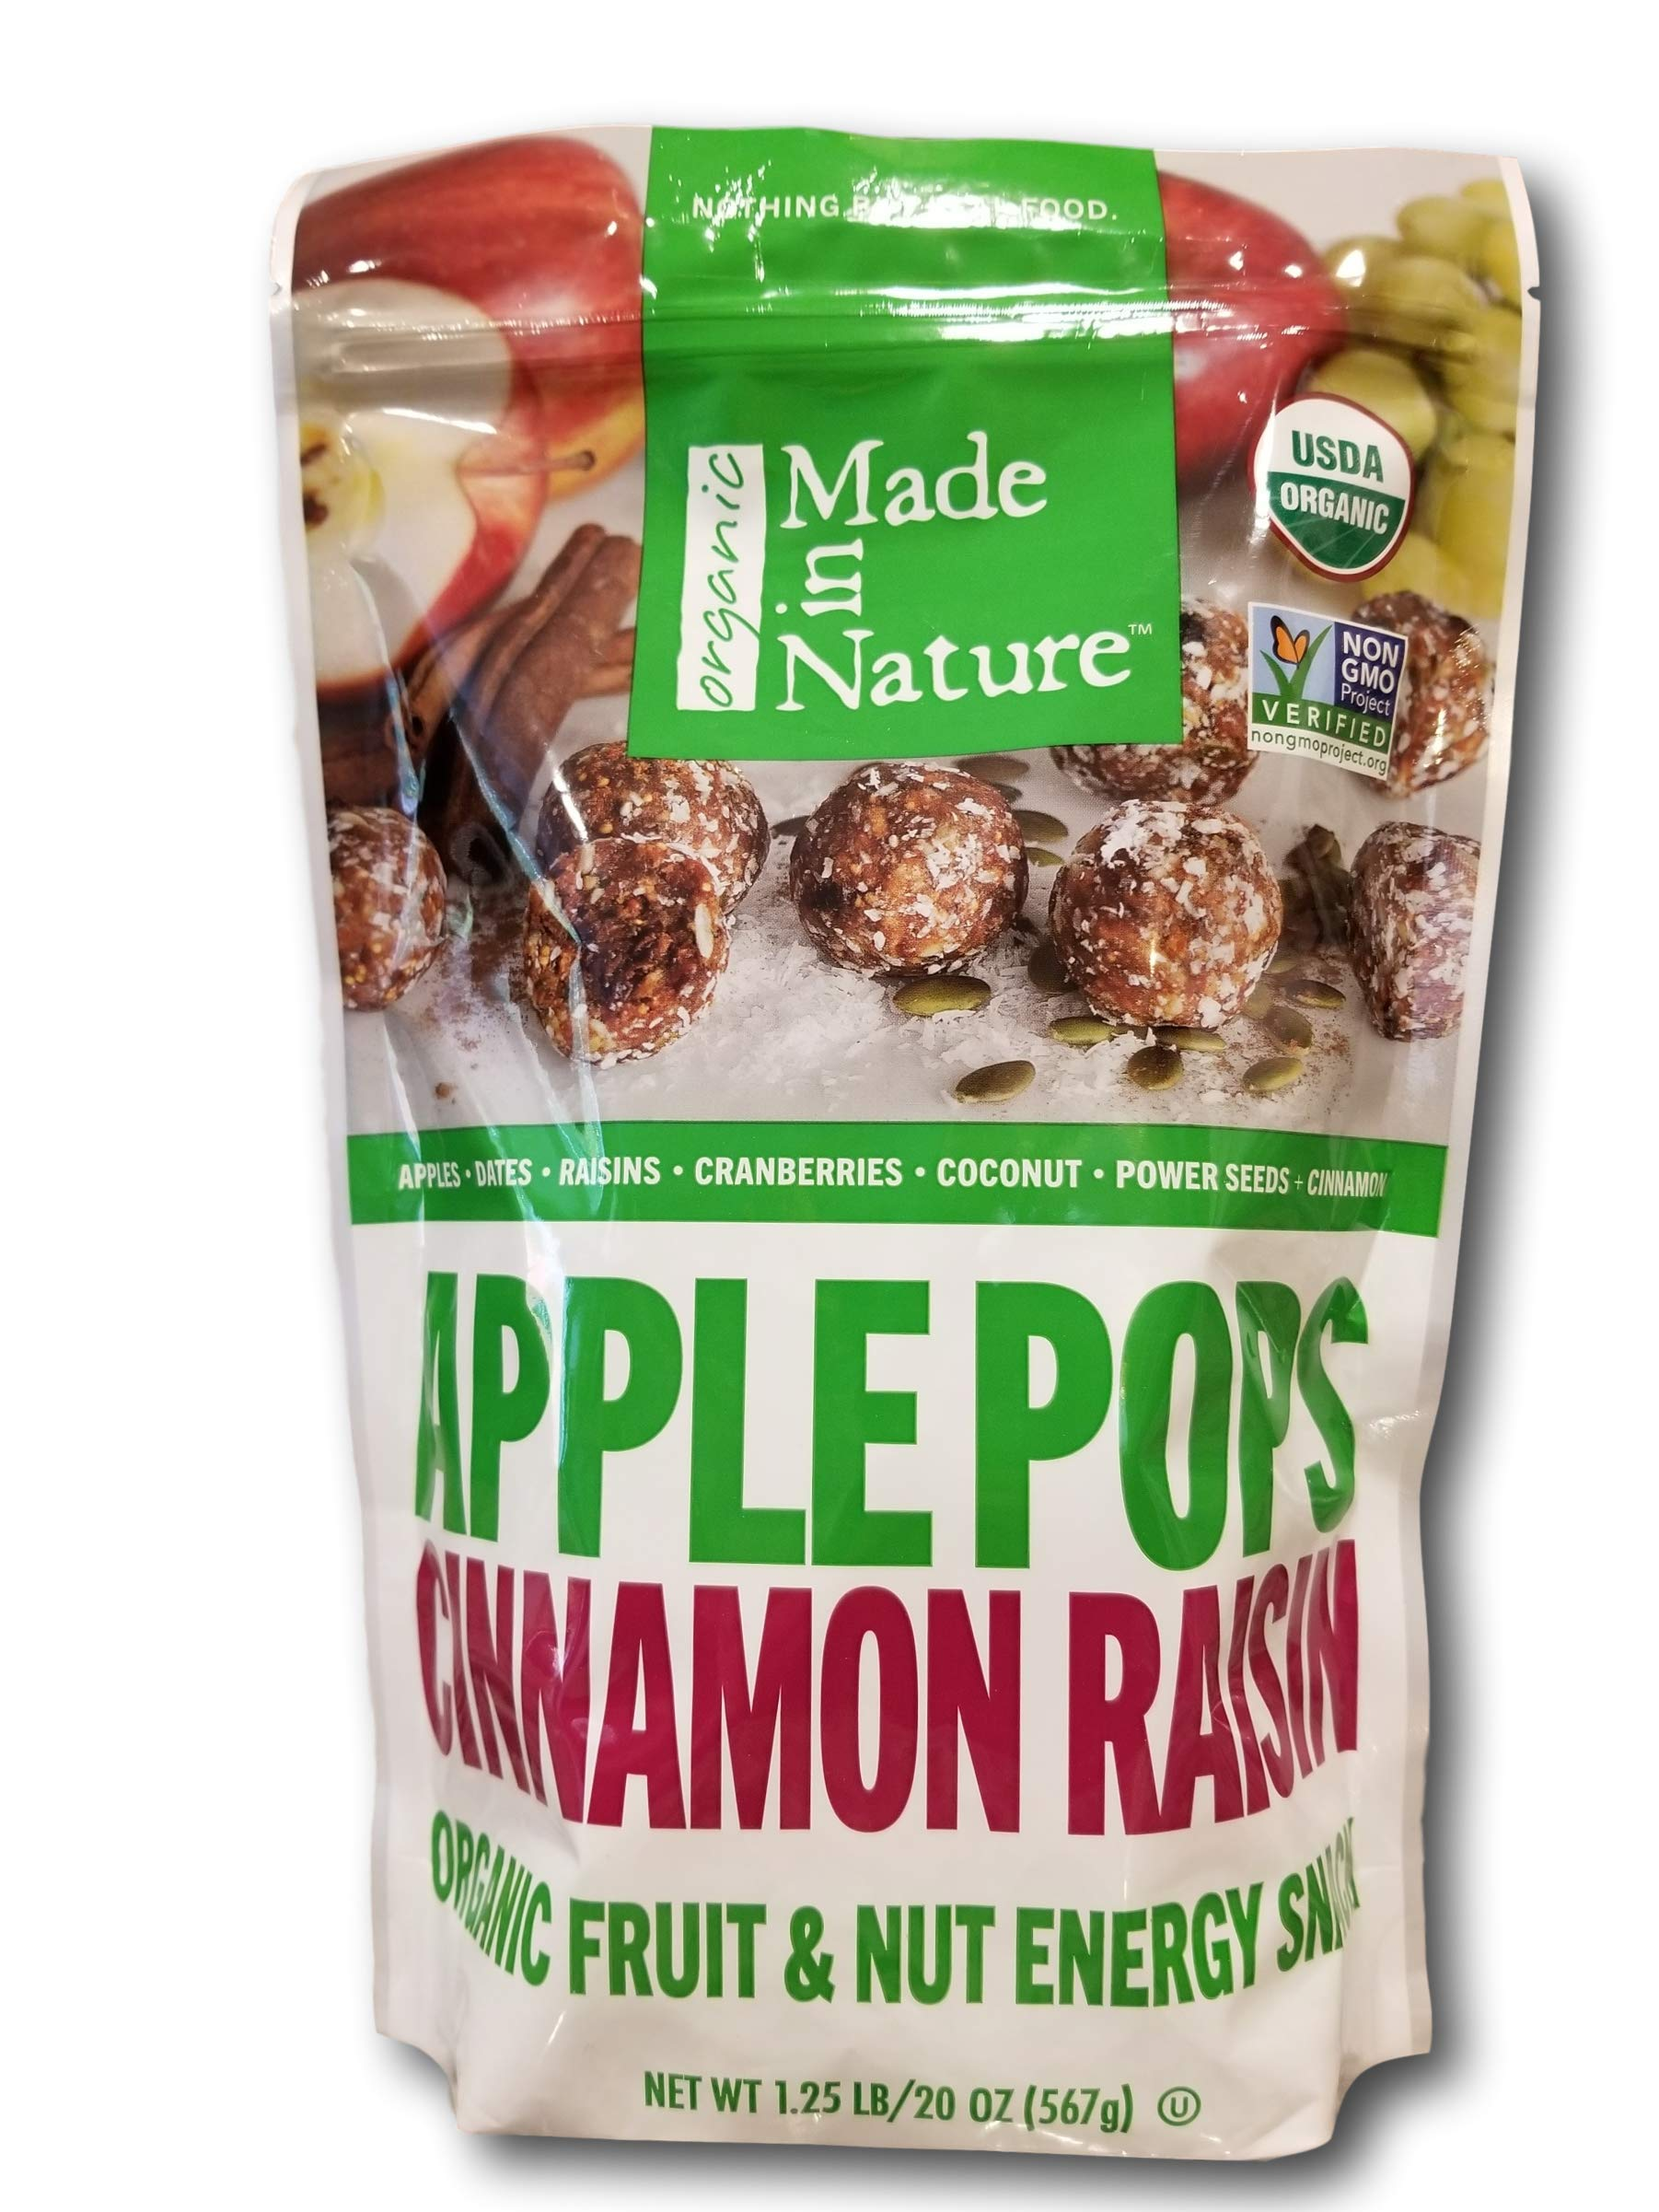 Organic Made in Nature Applepops with Cinnamon Raisins, Dates, Cranberries, Coconut, Seeds